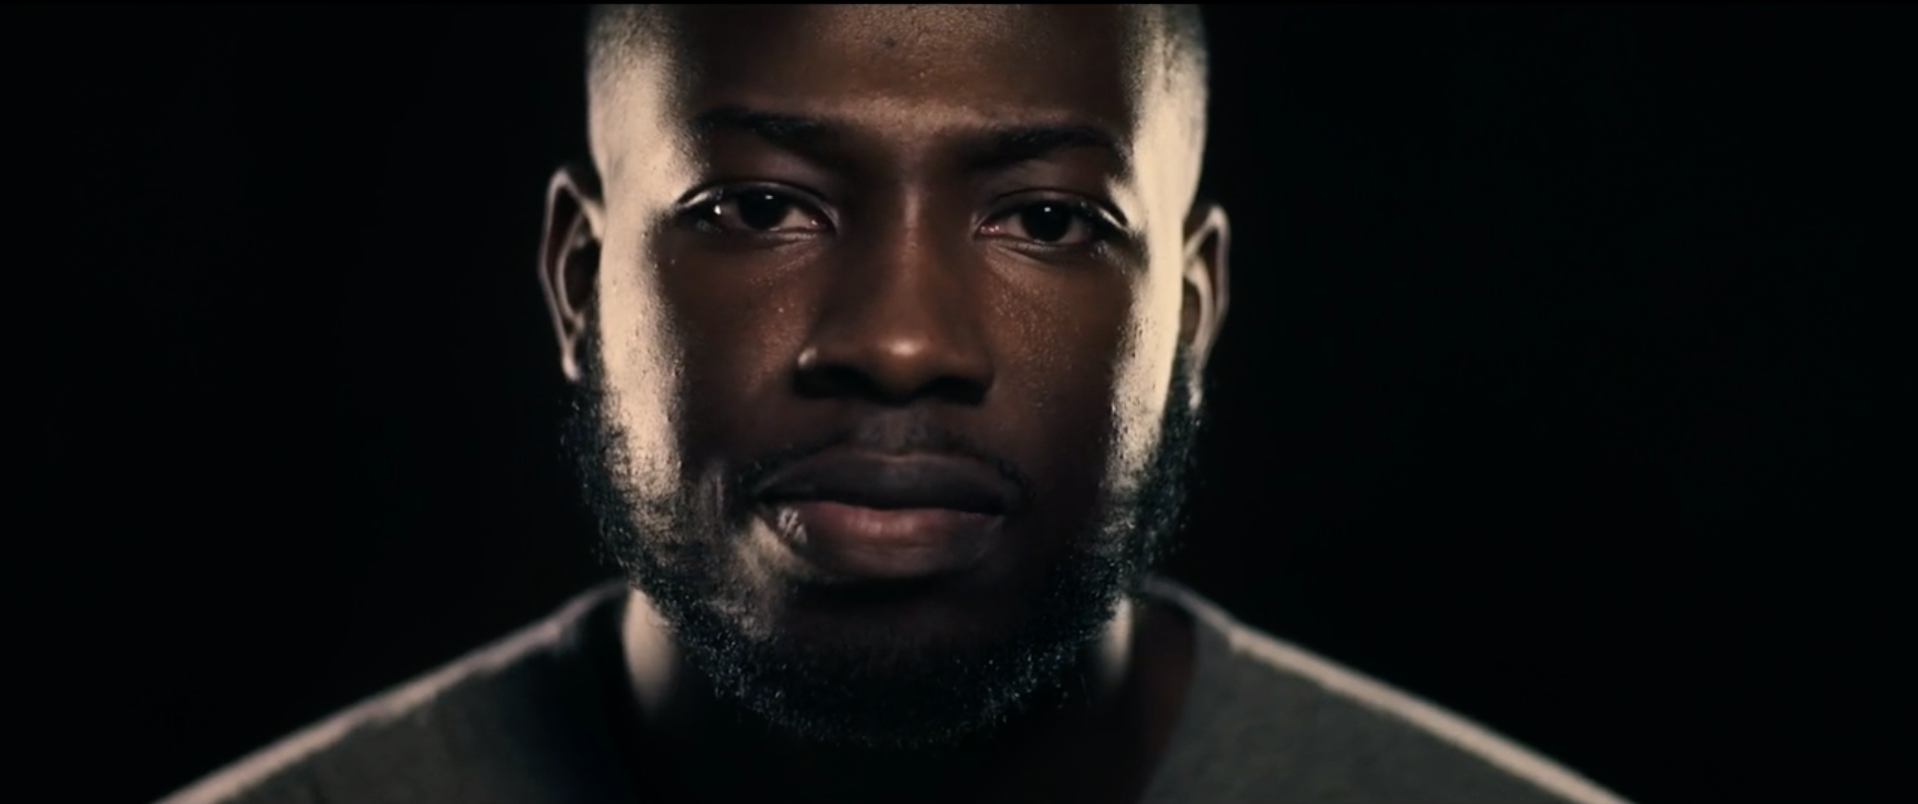 Watch The Guardian's powerful documentary about racism in the UK, Black Sheep